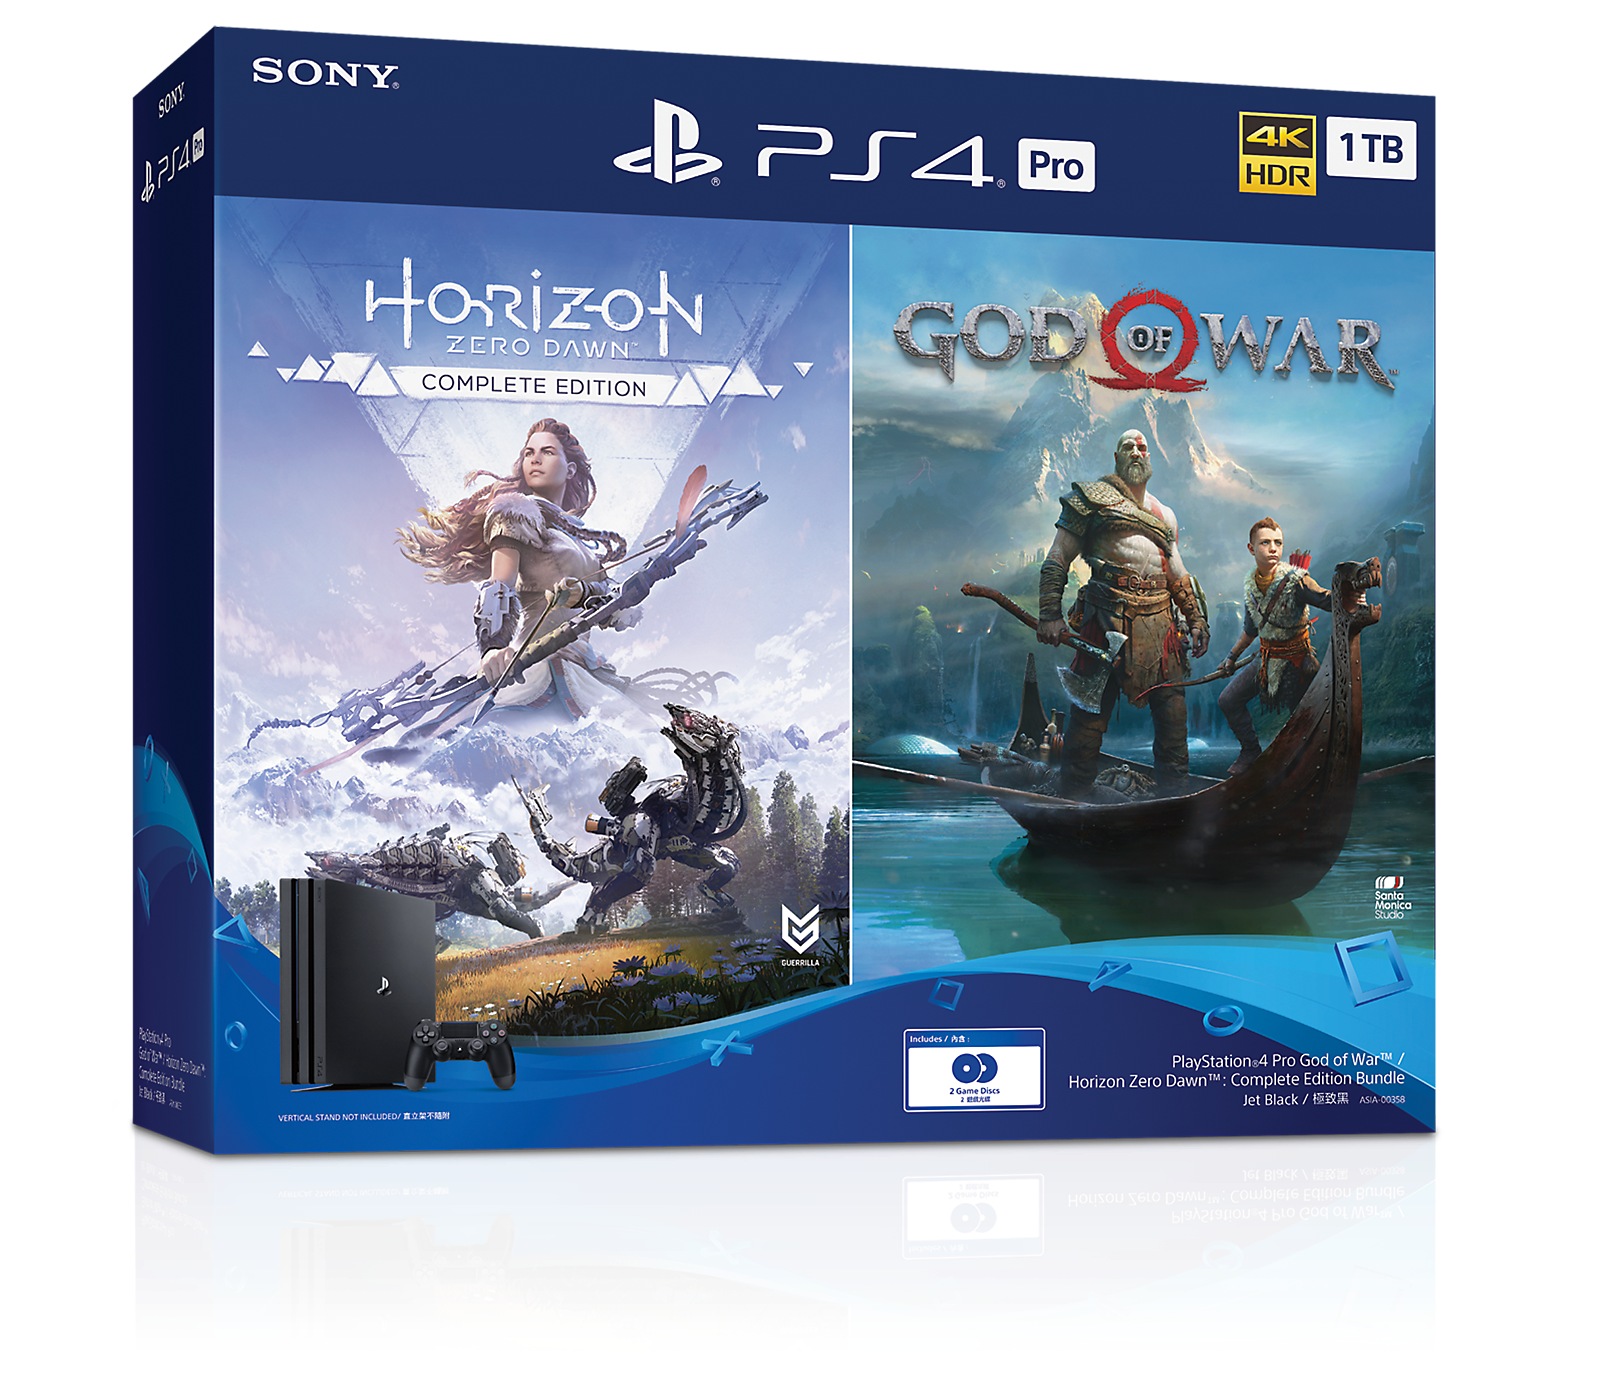 PlayStation 4 Pro God of War / Horizon Zero Dawn : Complete Edition Bundle